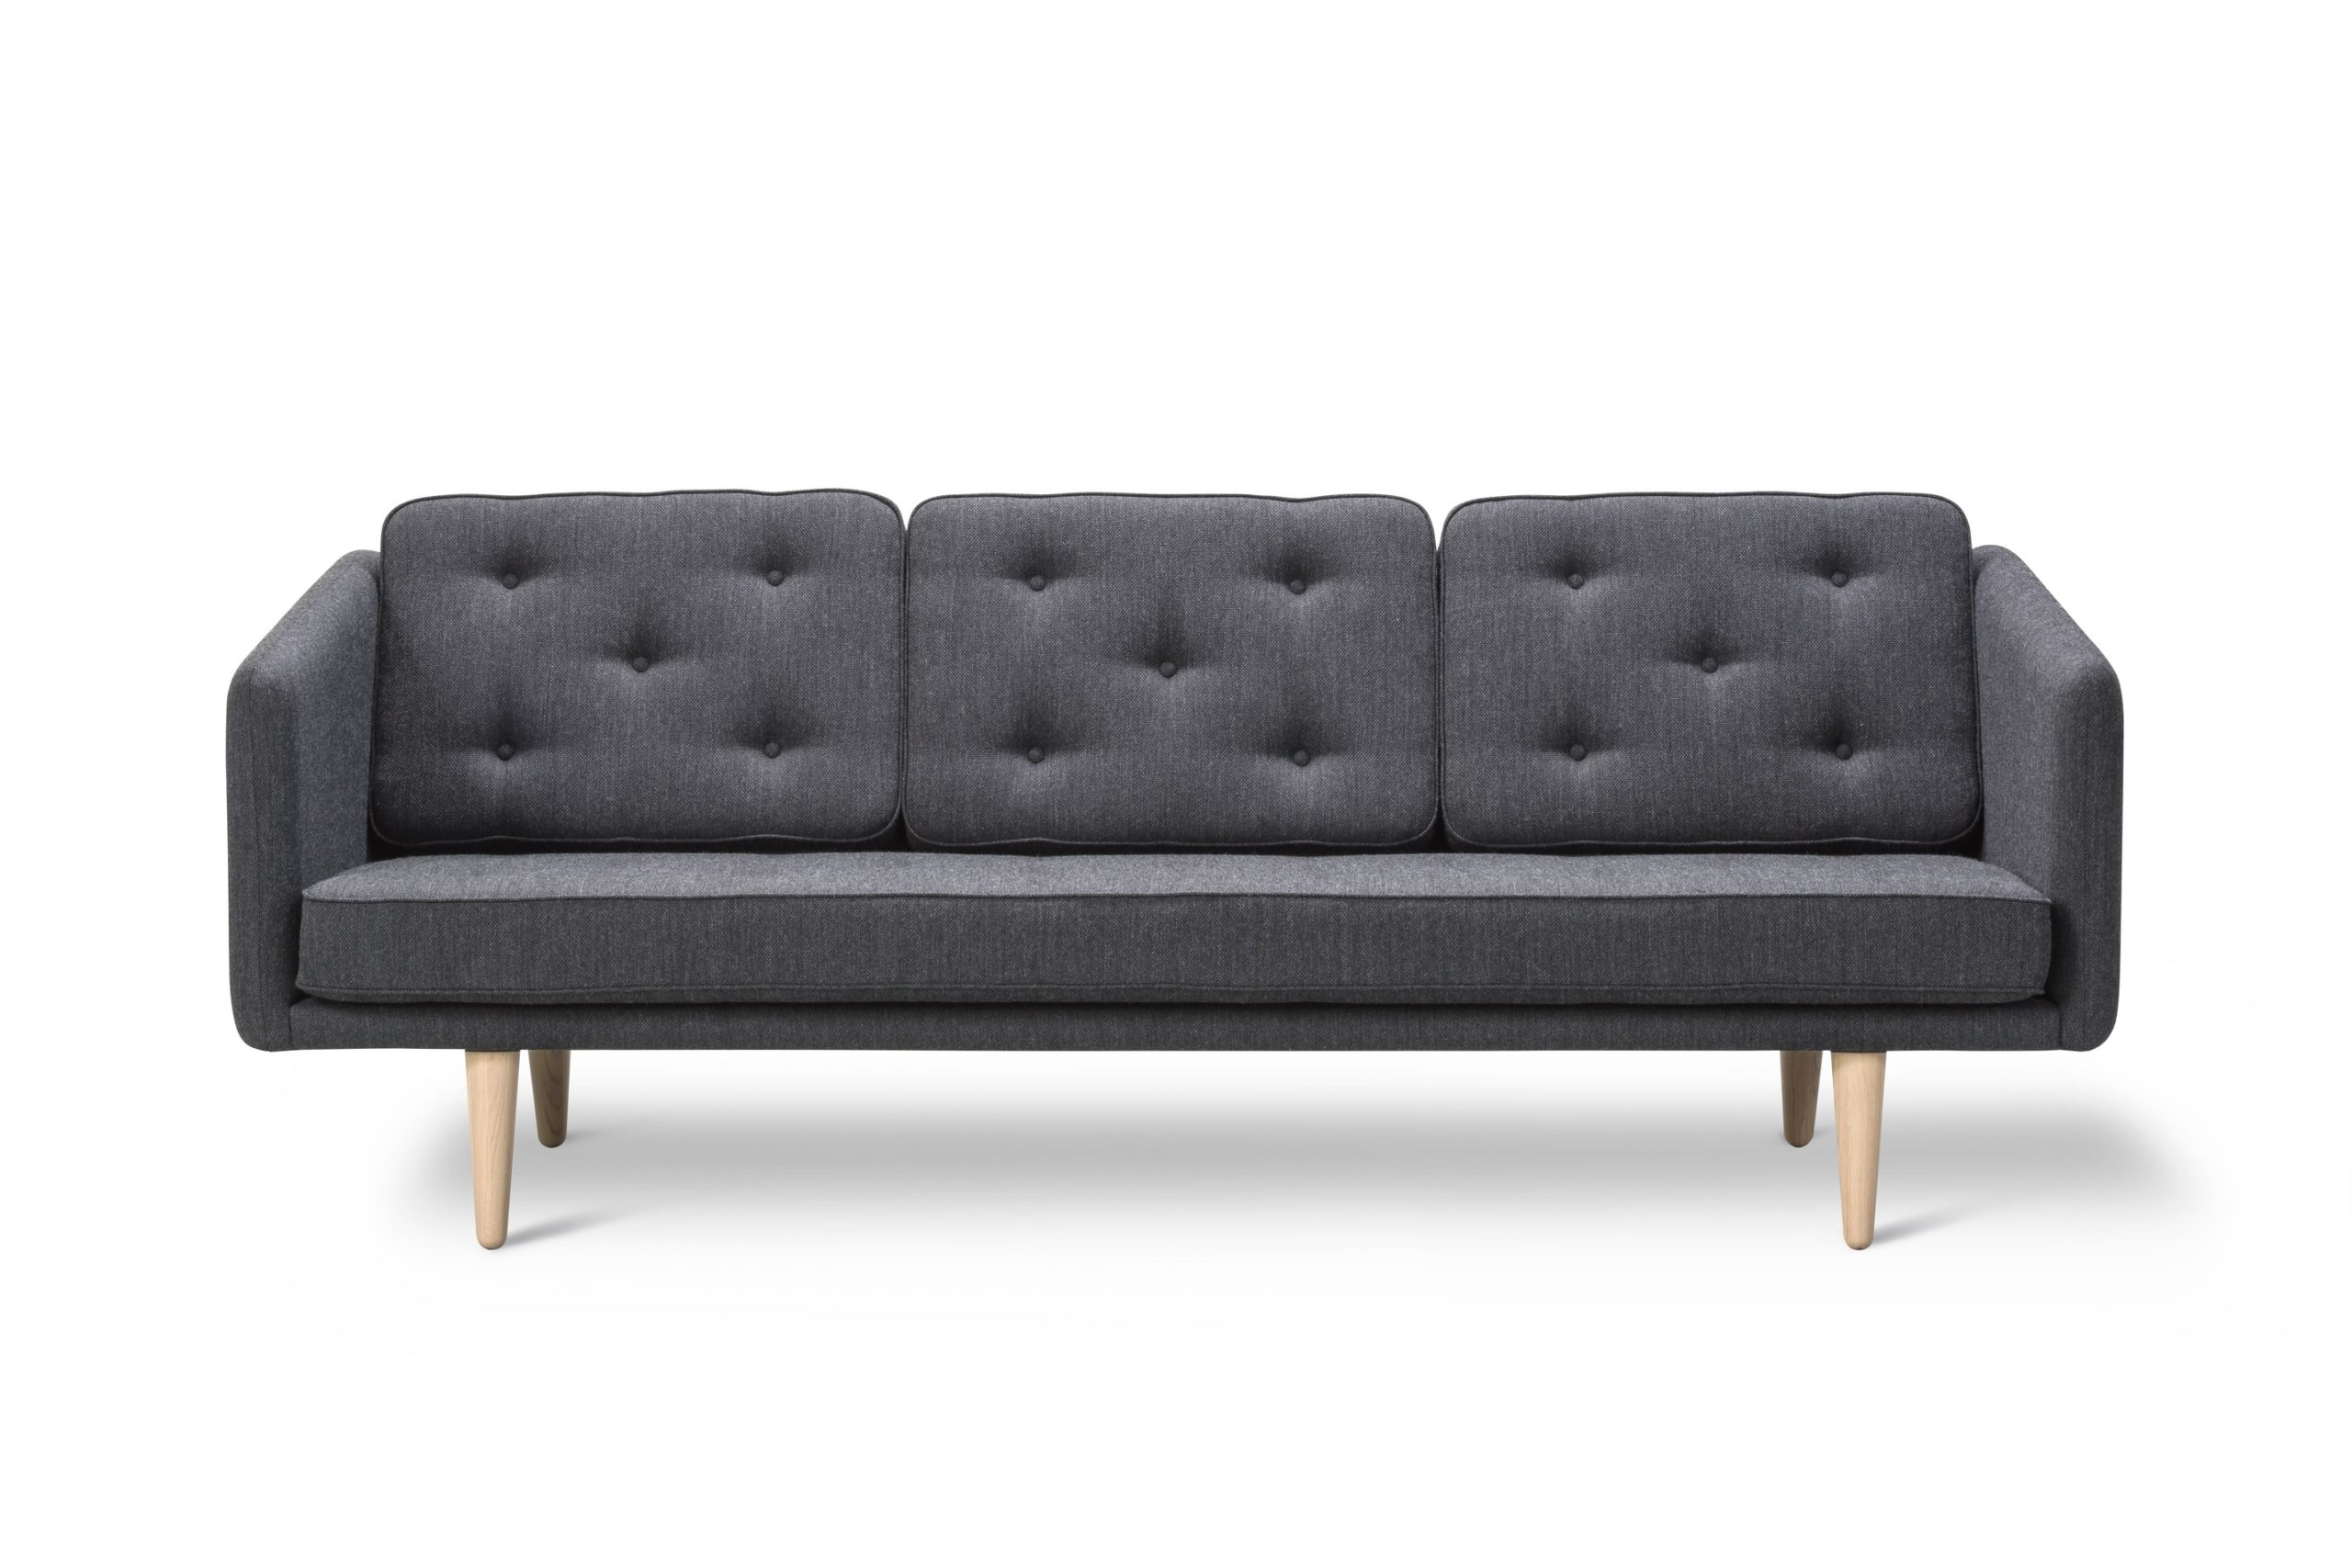 Fersk No. 1 sofa Design Deal tilbud - Olai Furniture CP-61